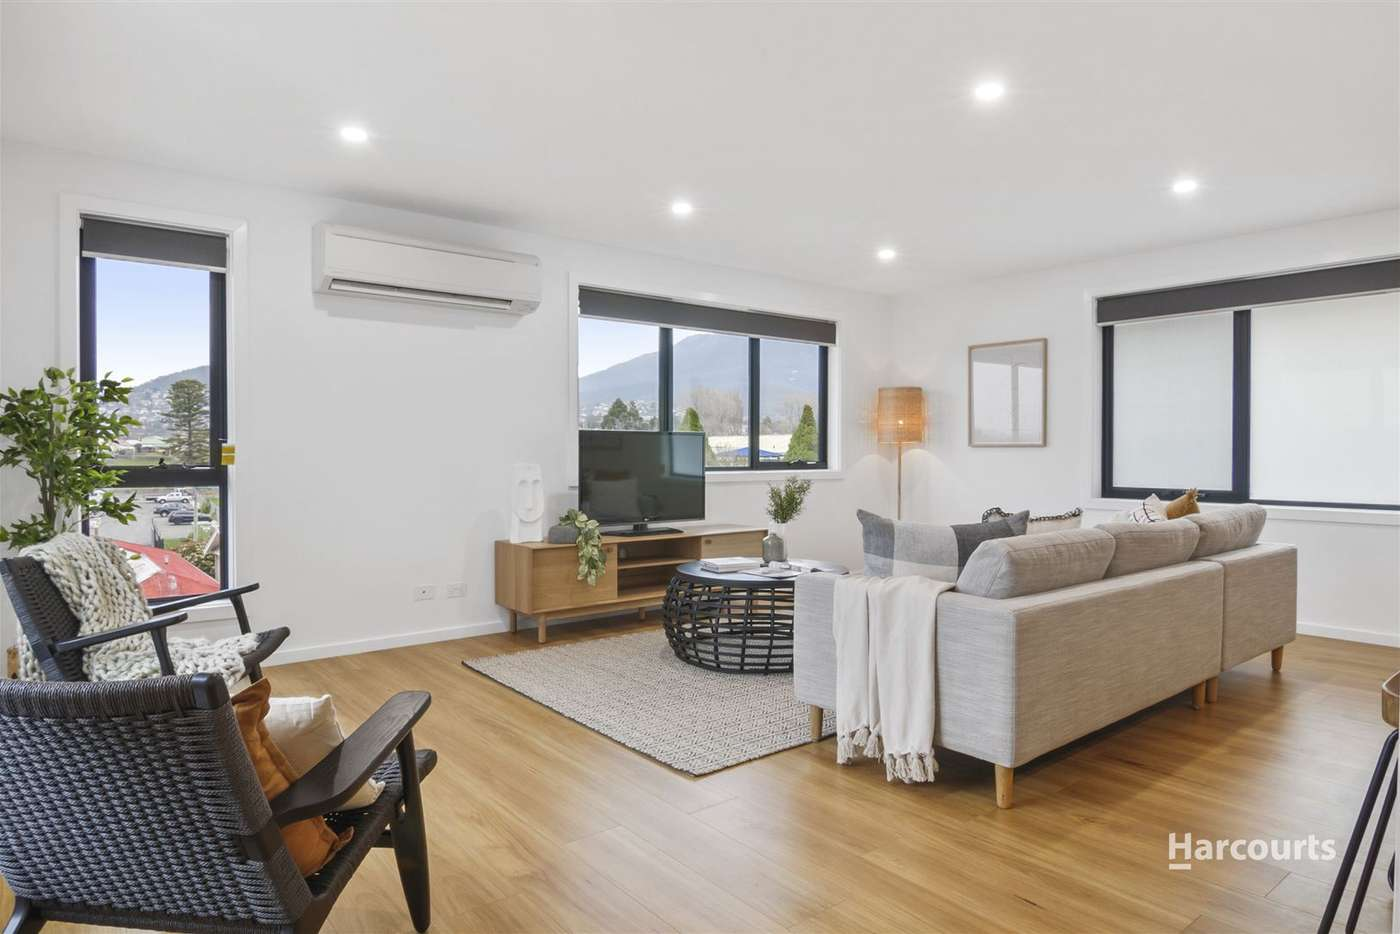 Fifth view of Homely house listing, 37a Garden Road, Moonah TAS 7009